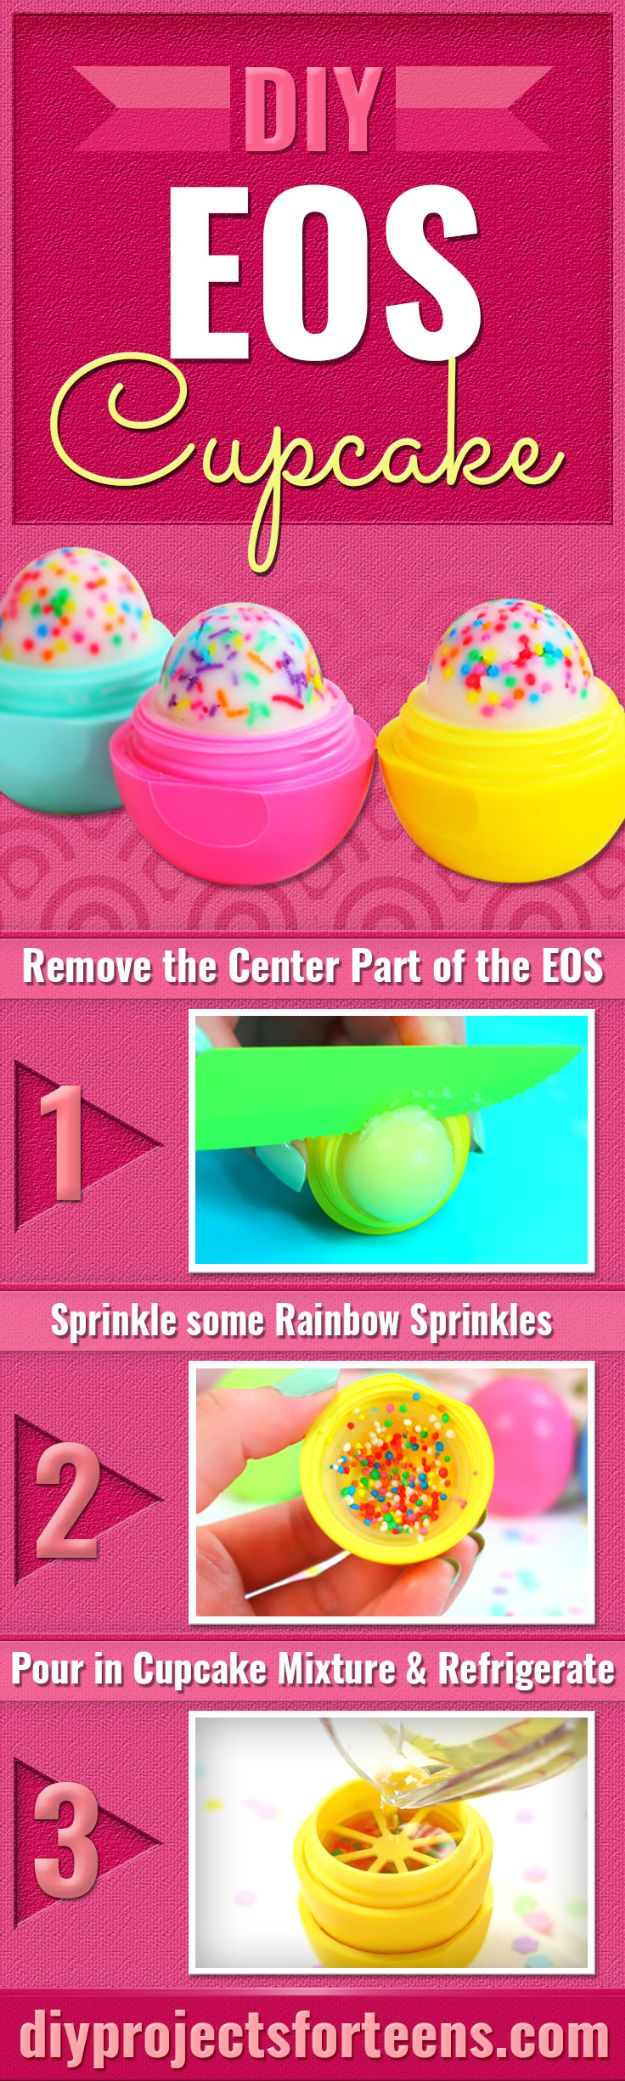 Easy Crafts for Teen Girls | DIY Cupcake EOS l Fun Craft and DIY Ideas for Teenagers and Tween Girl | Room Decor and Gifts